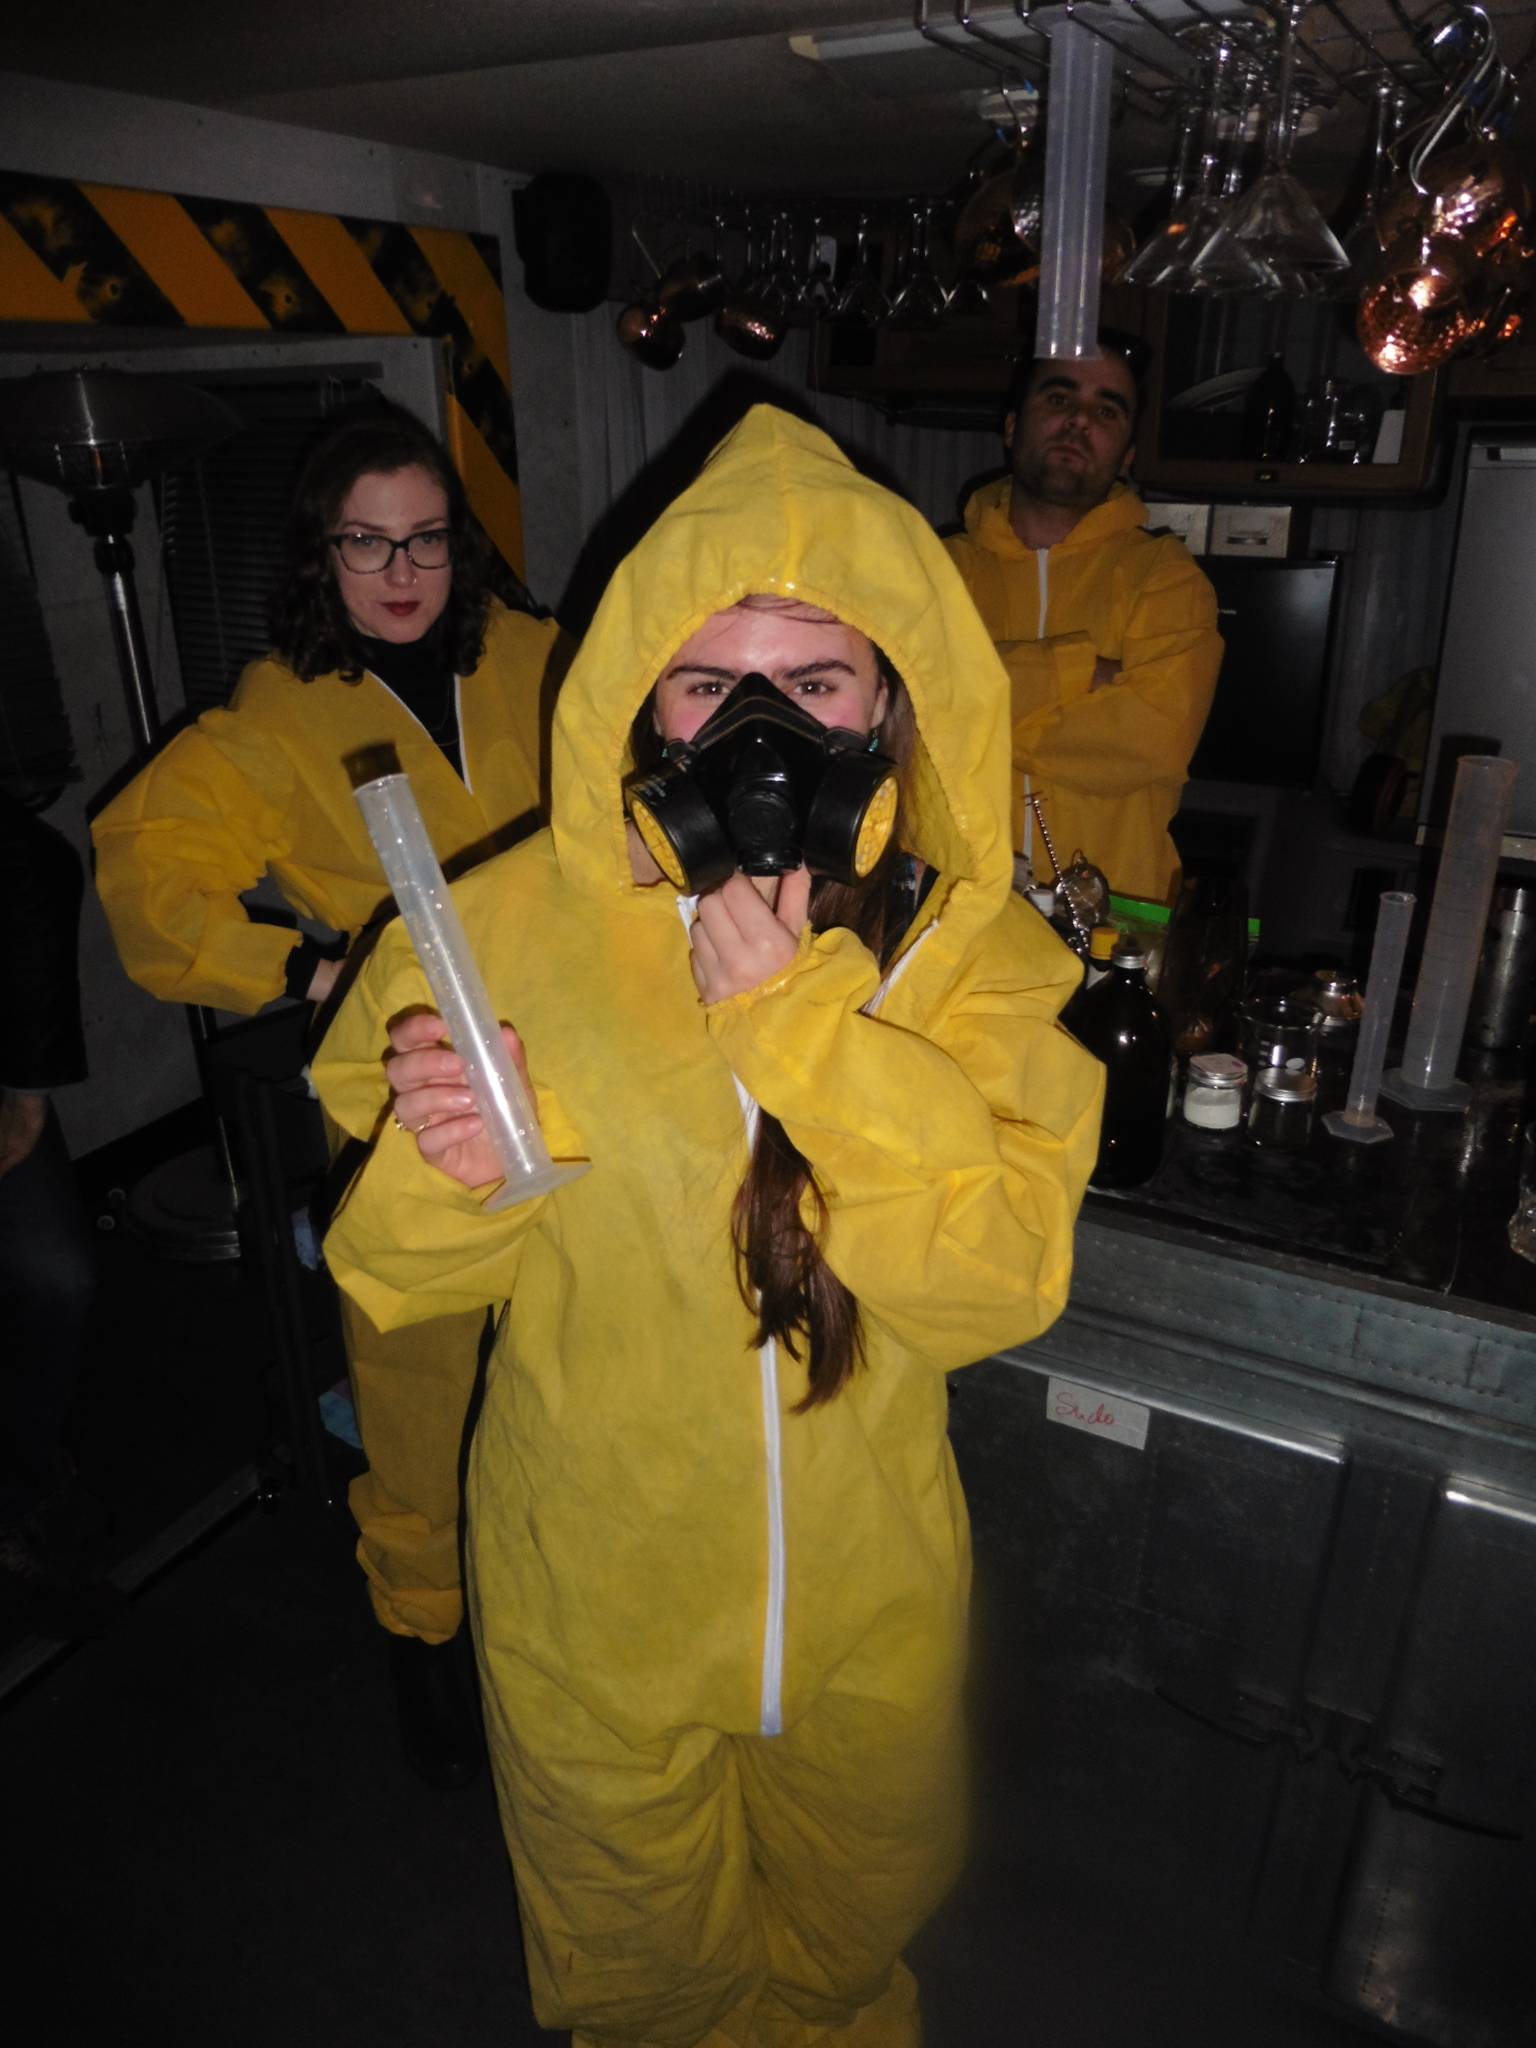 Take 3: the birthday girl getting into character @ Breaking Bad Bar - ABQ London